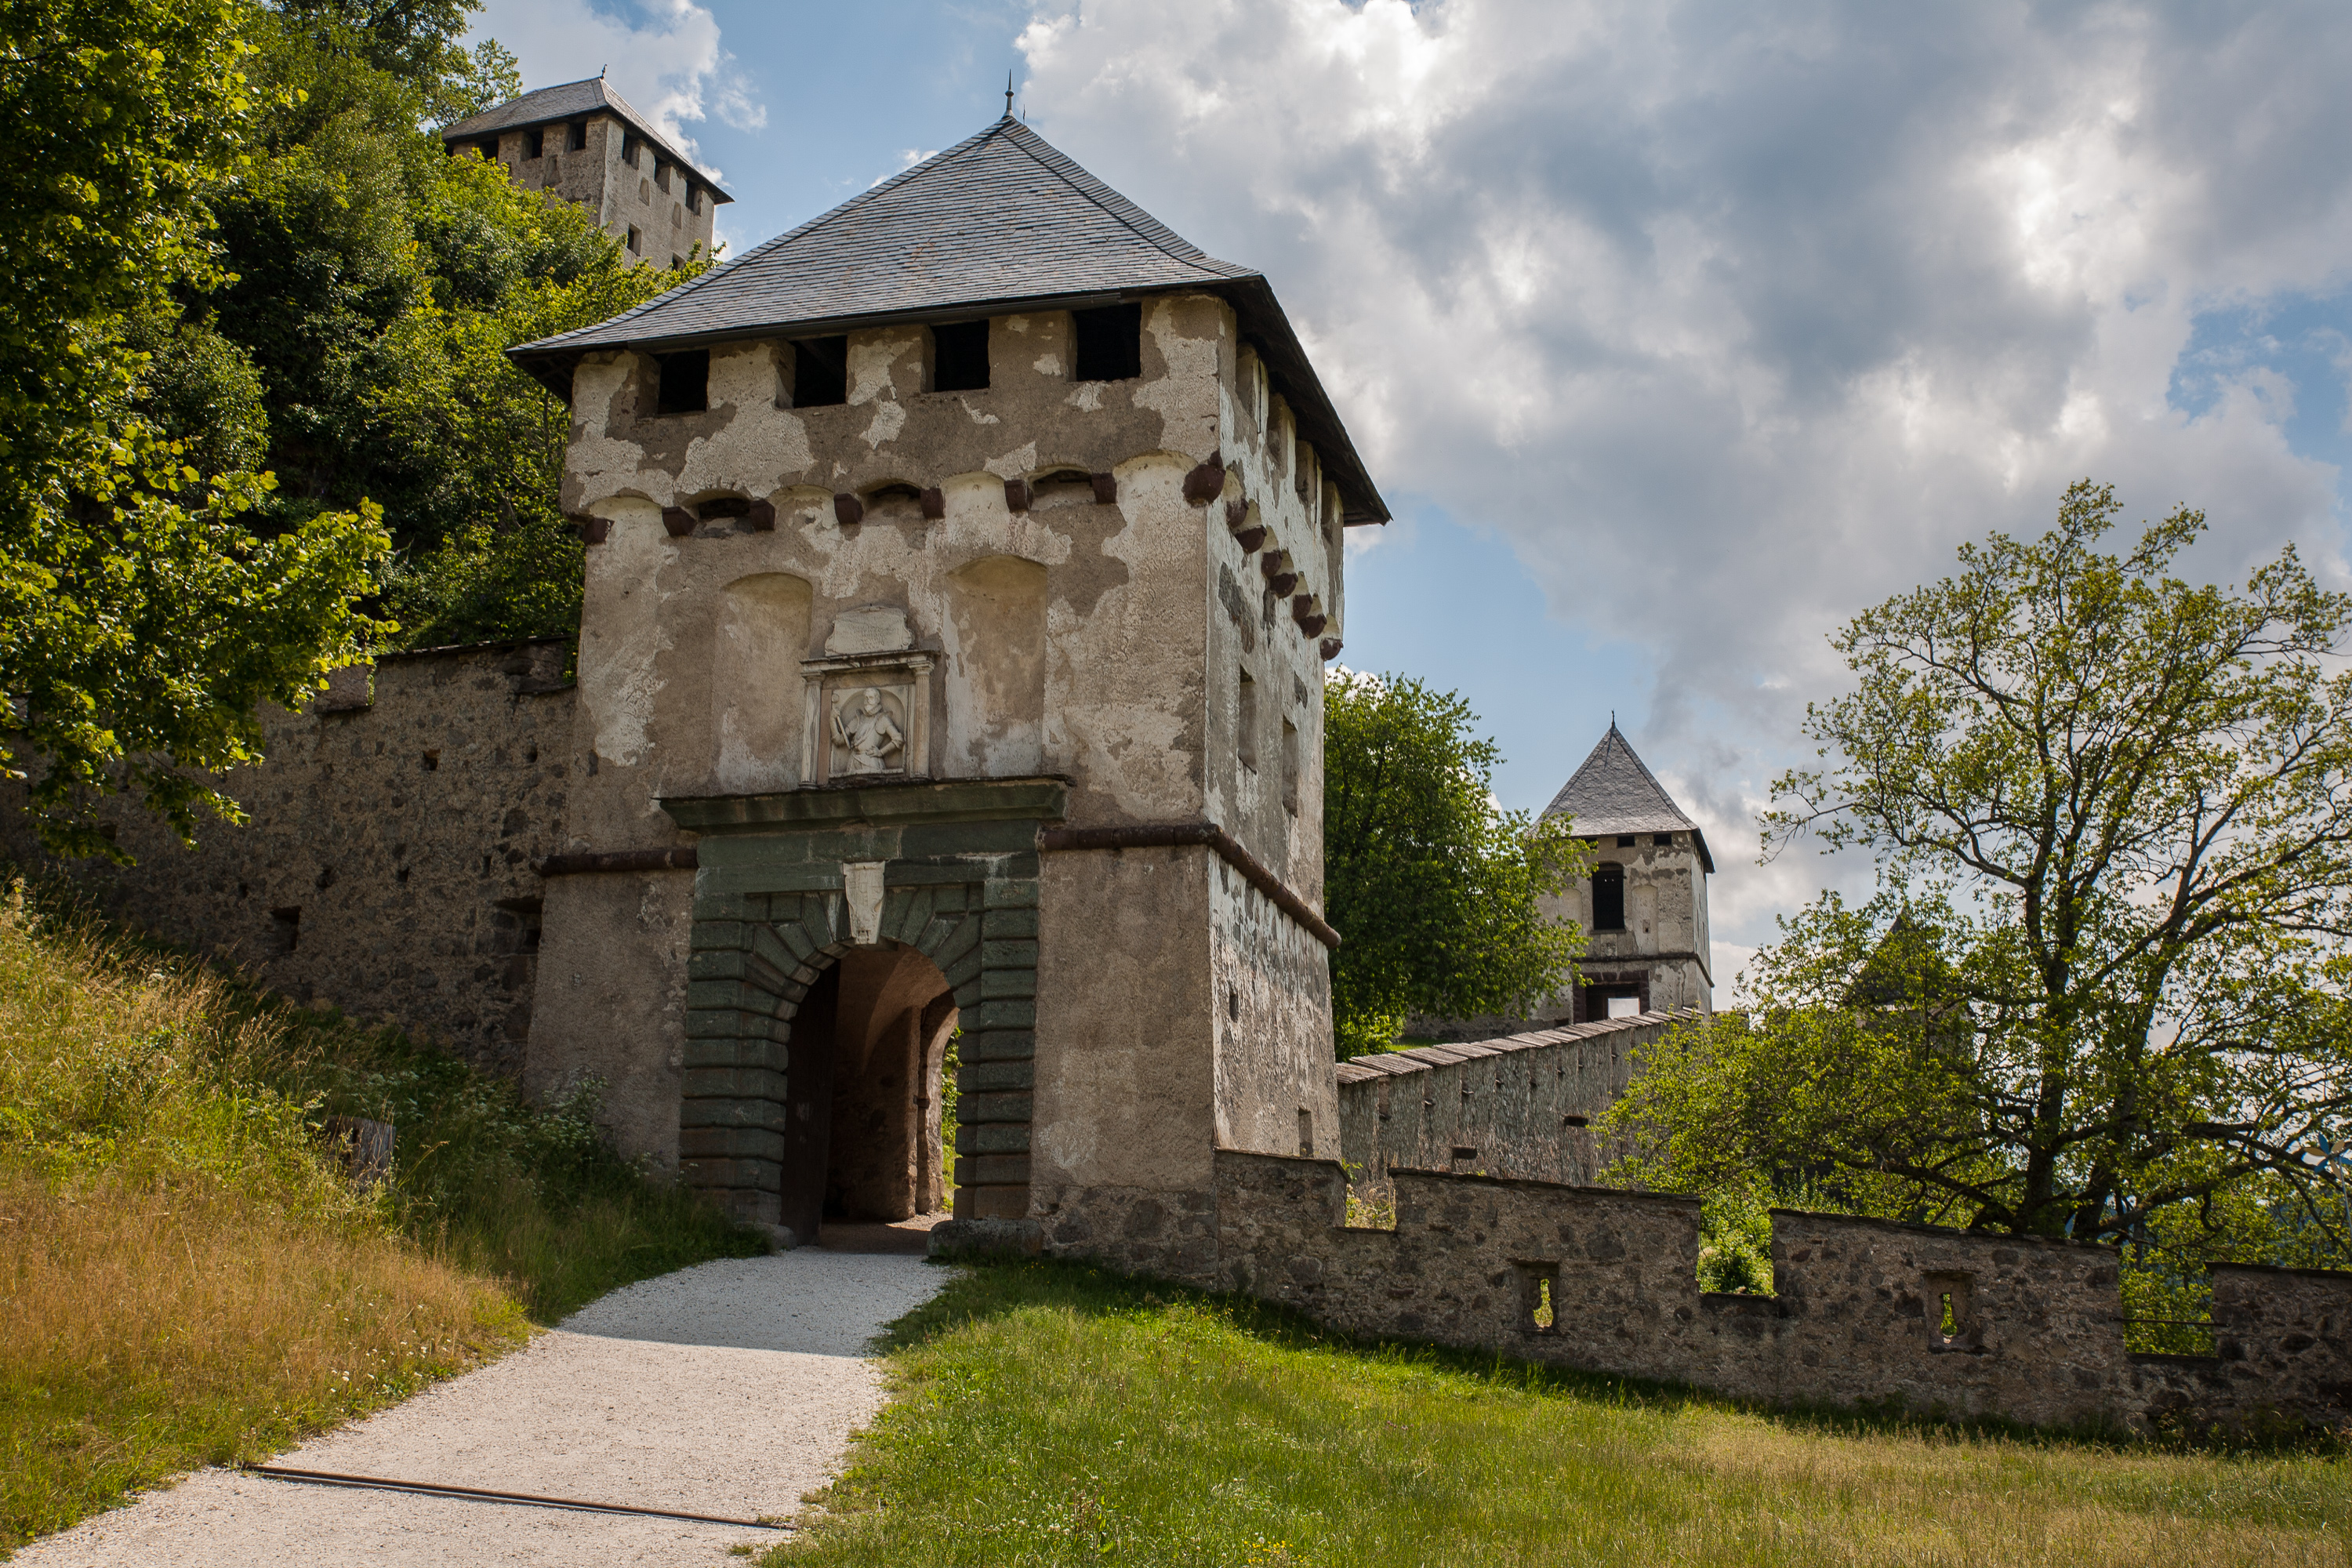 One of the 14 gates at Hochosterwitz Castle